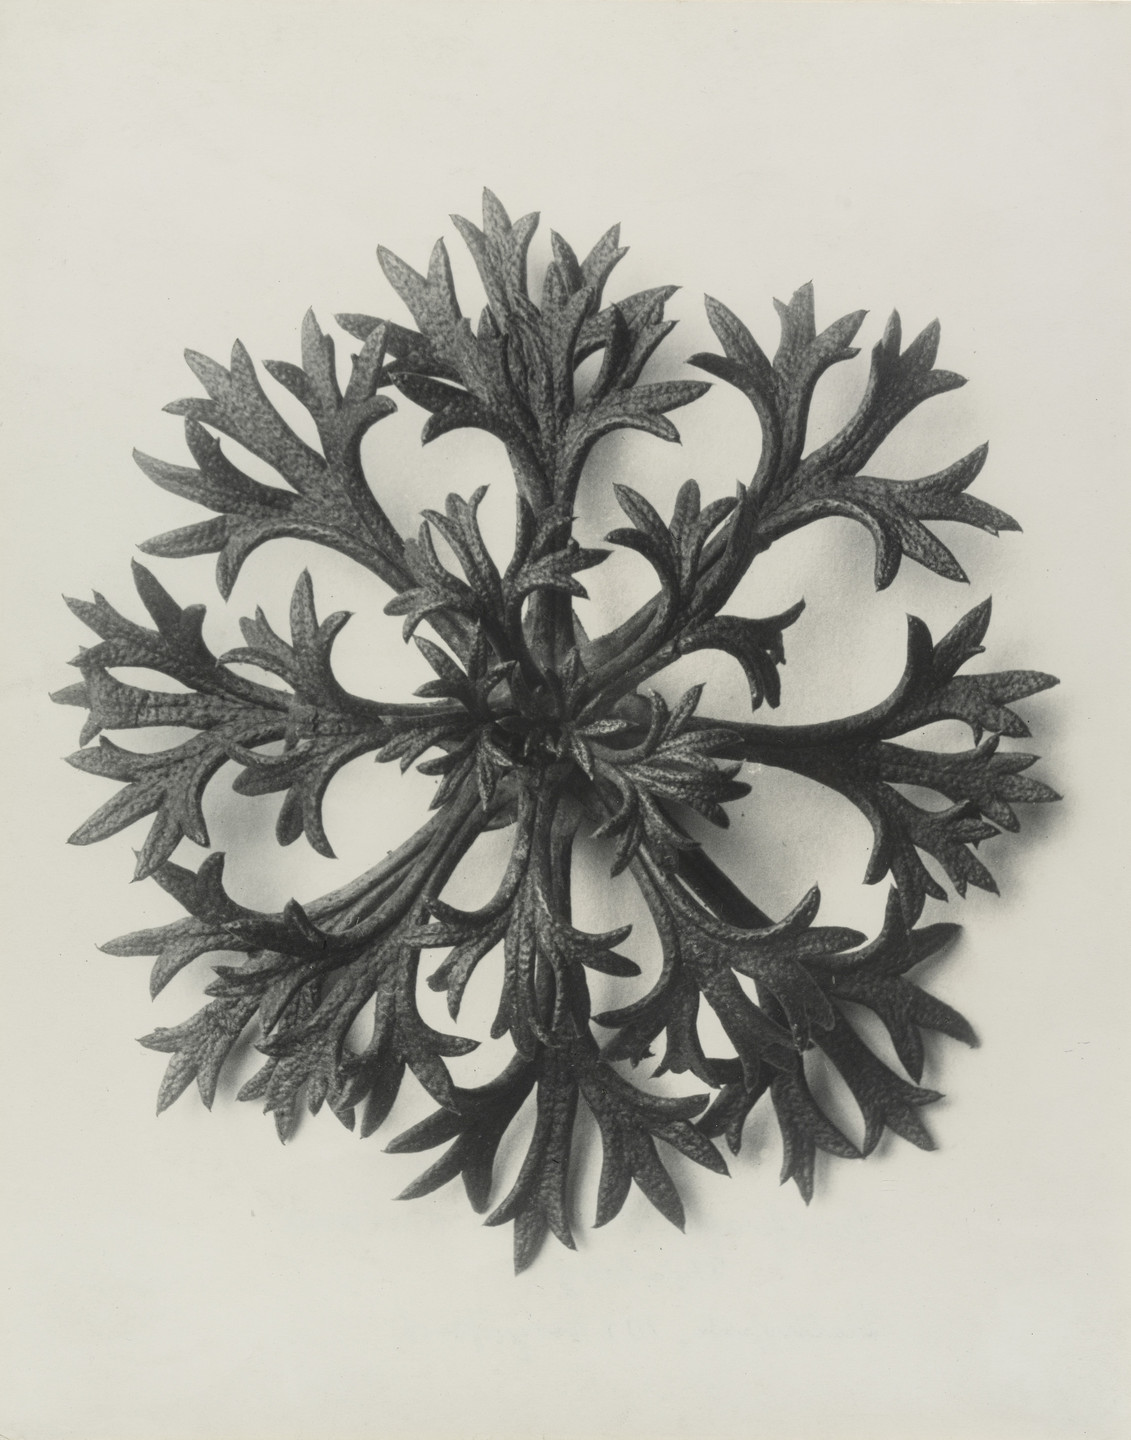 Karl Blossfeldt. Saxifraga wilkommiana (Willkom's Saxifrage. Rosette of Leaves Enlarged 10 Times). 1898–1928